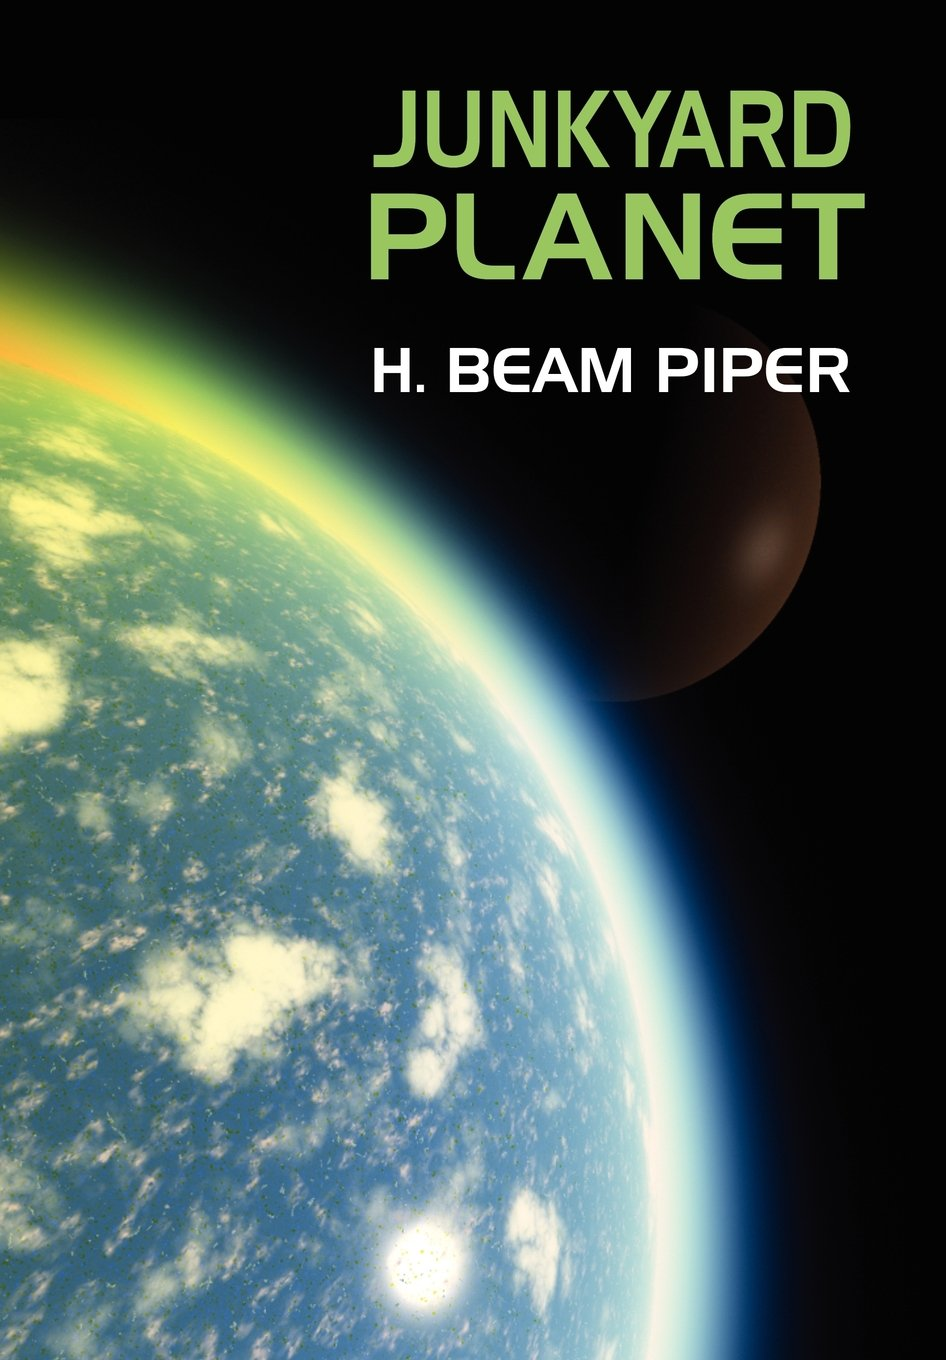 Image - Junkyard Planet by H. Beam Piper